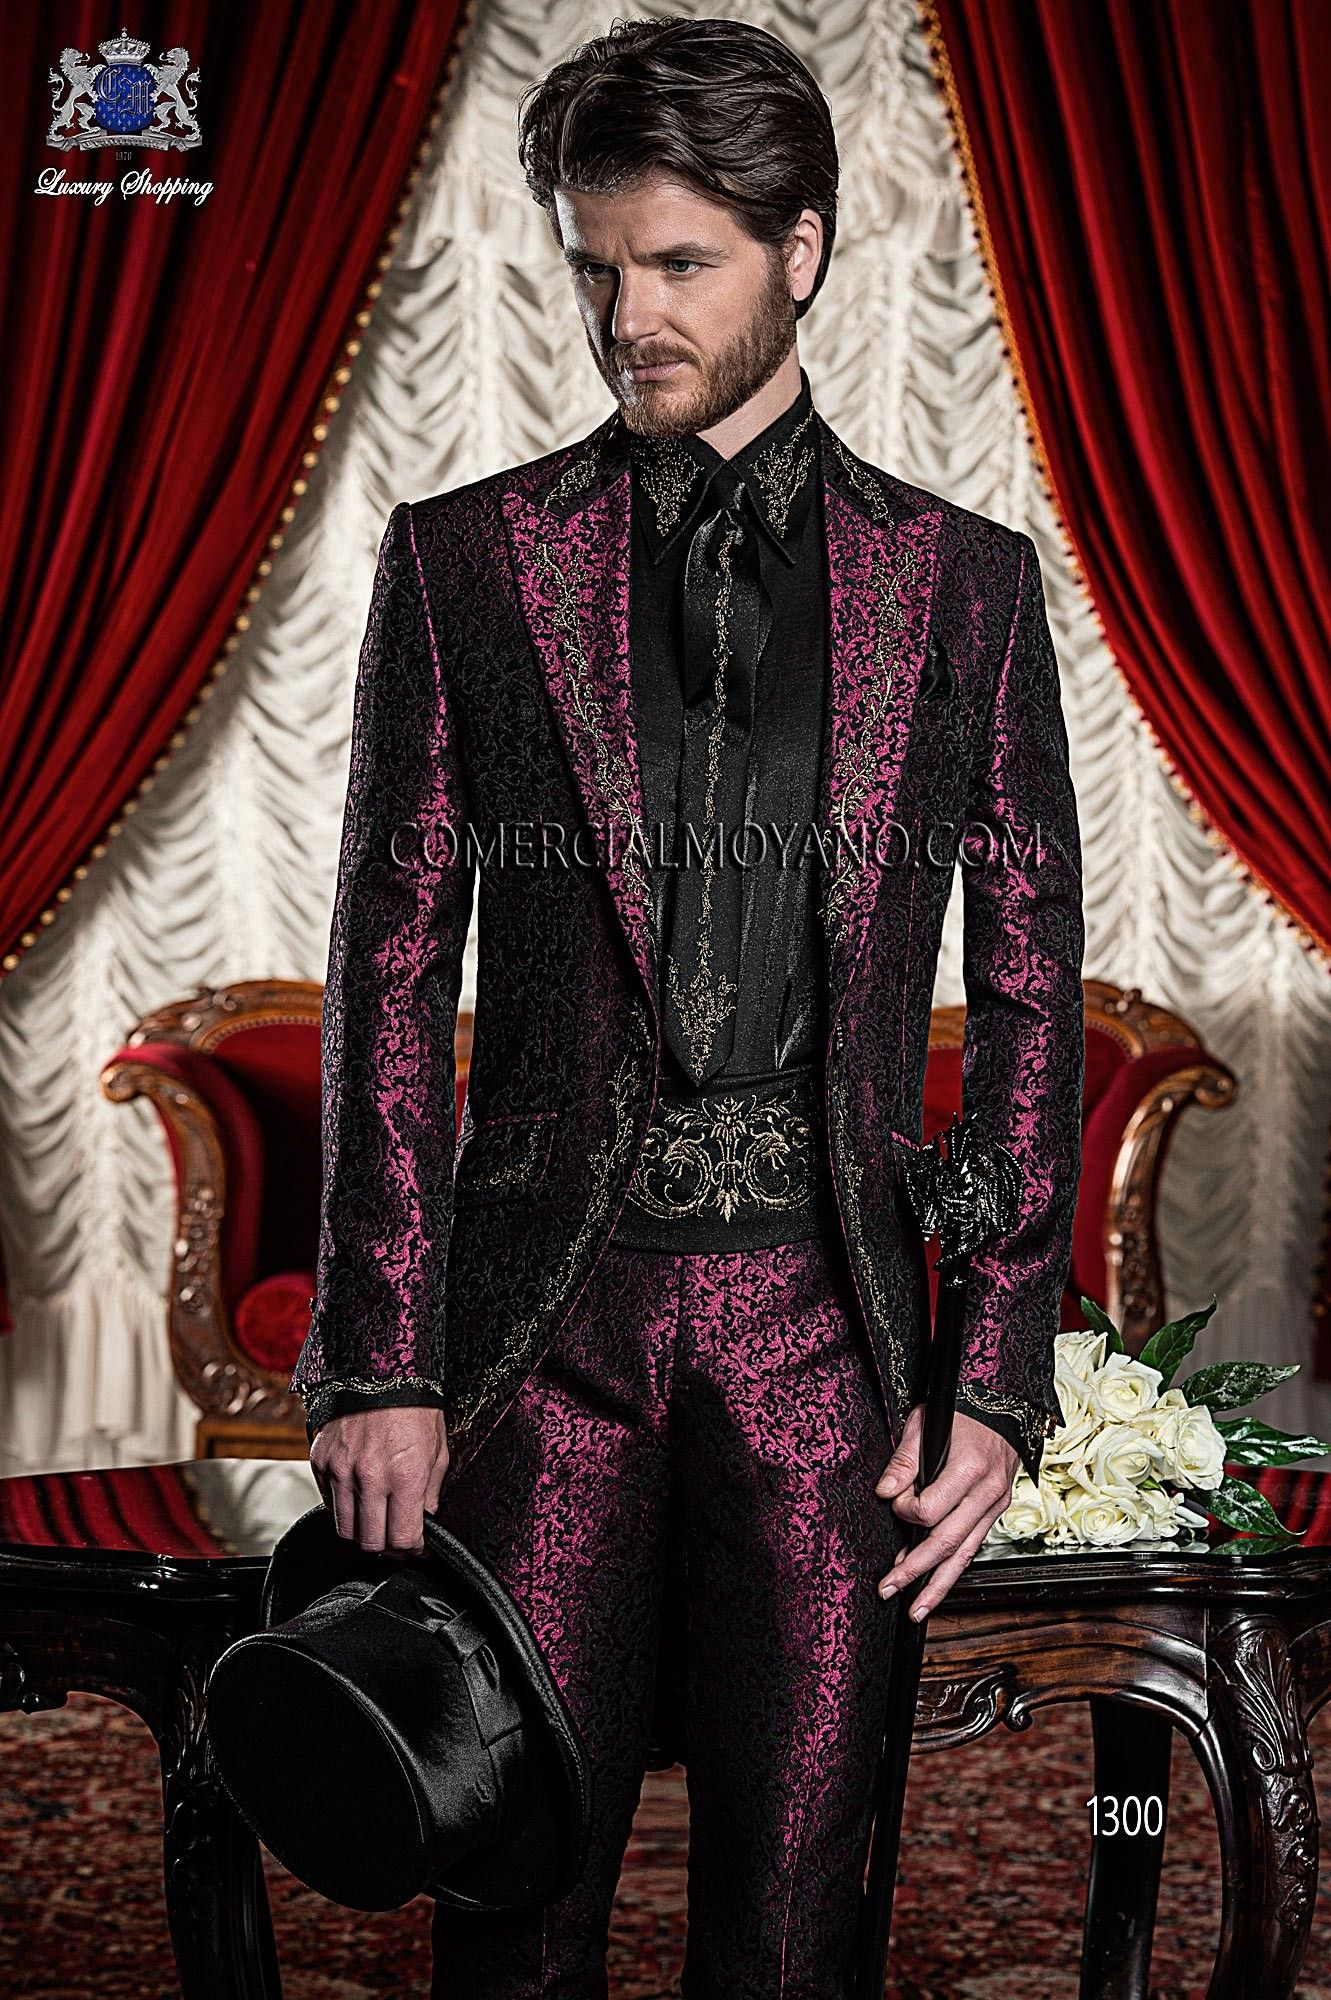 BAROQUE ITALIAN BURGUNDY/BLACK WEDDING SUIT Model 1300 OTTAVIO ...